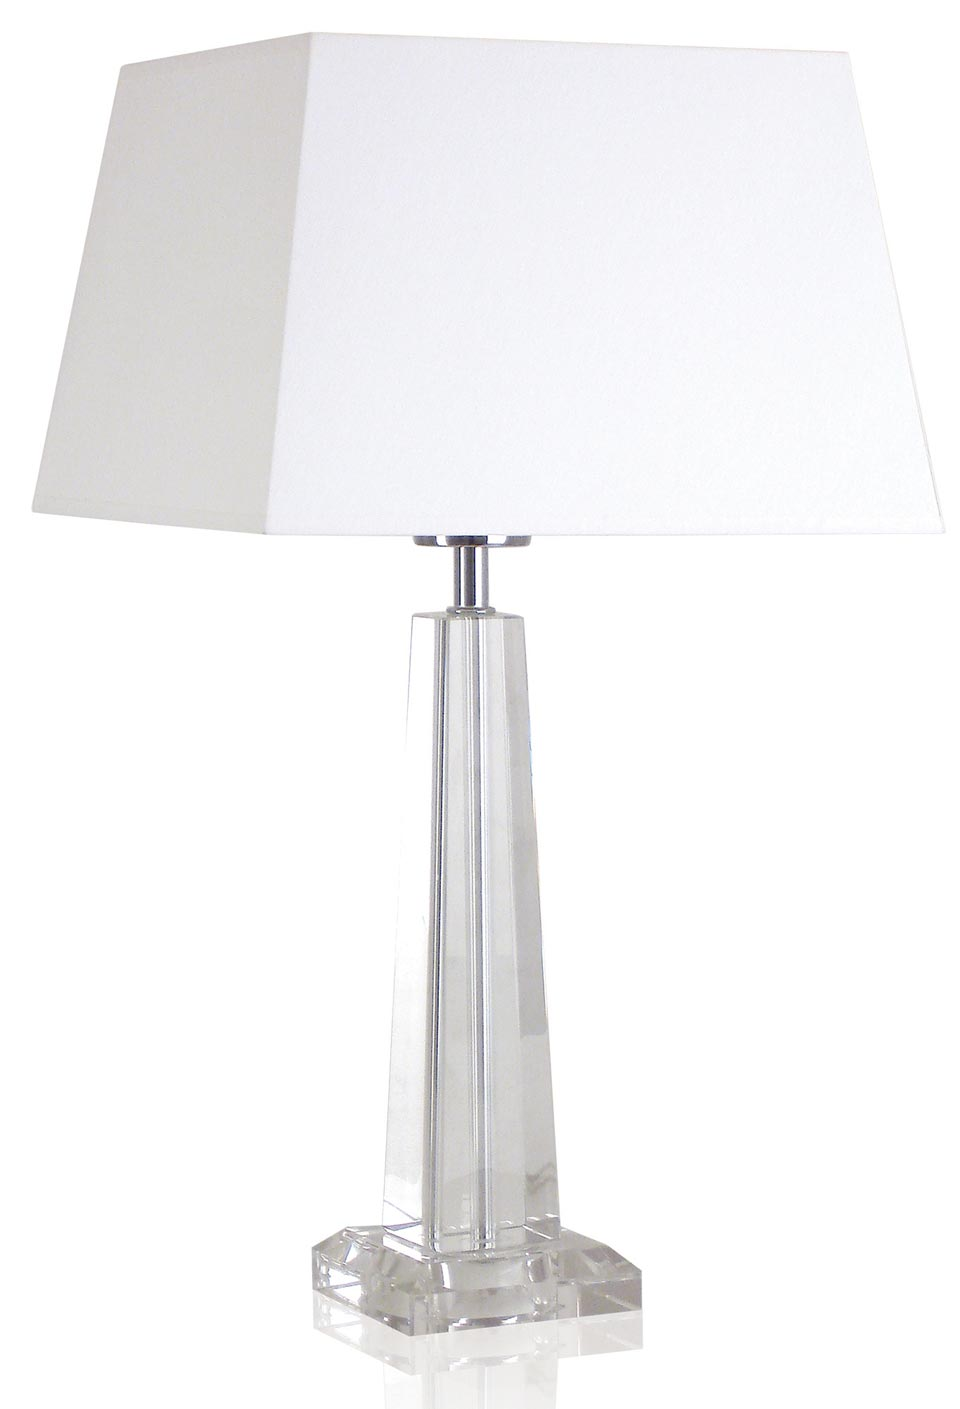 Hilary B Optical glass pyramid shaped table lamp. Le Dauphin.